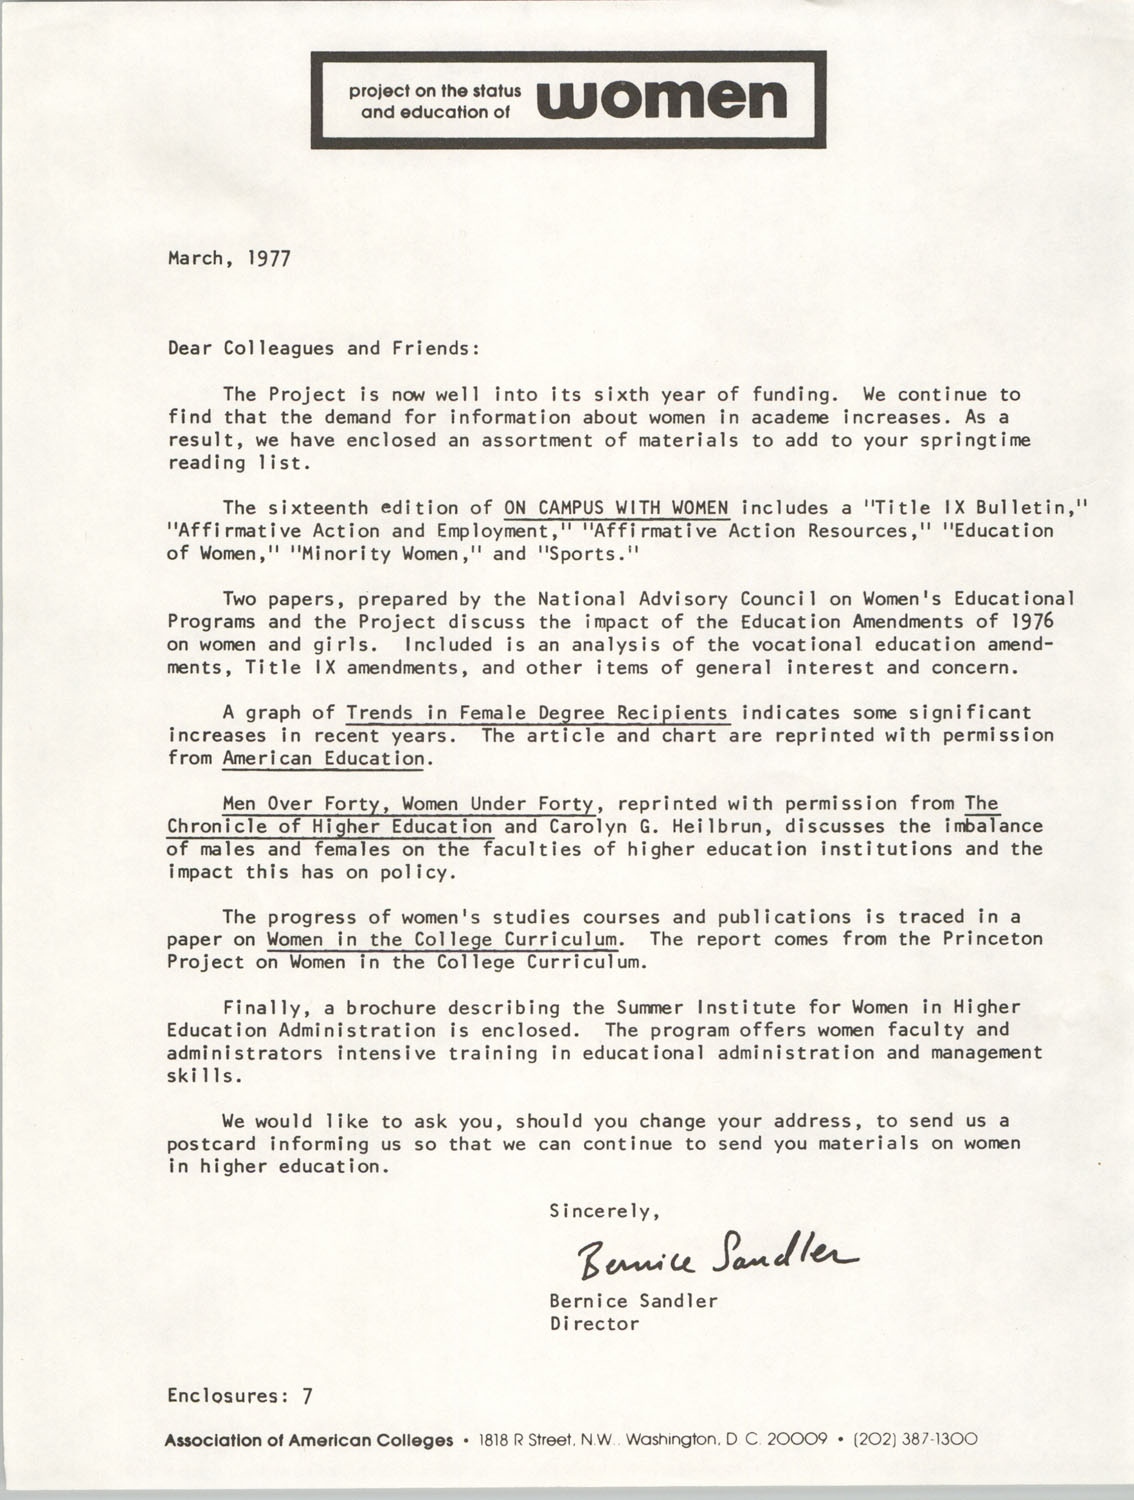 Letter from Bernice Sandler to Association of American Colleges Colleagues and Friends, June 1976